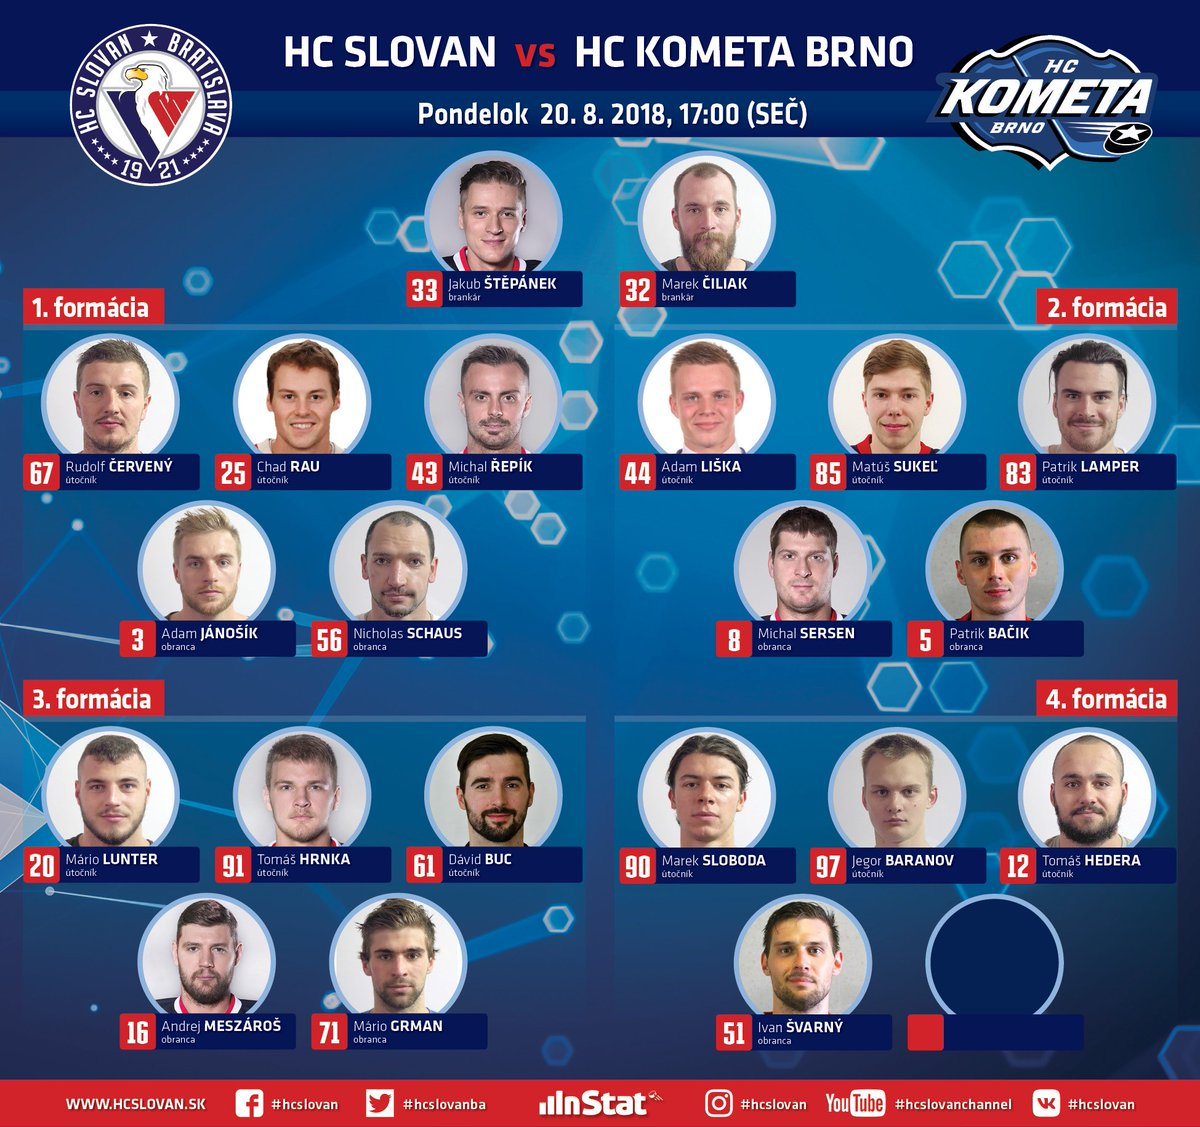 Here is #hcslovan lineup for 1st home preseason game against @HCKometa @khl_eng @khl @khlmediateam #VerniSlovanu<br>http://pic.twitter.com/Ruw6kuxRbv